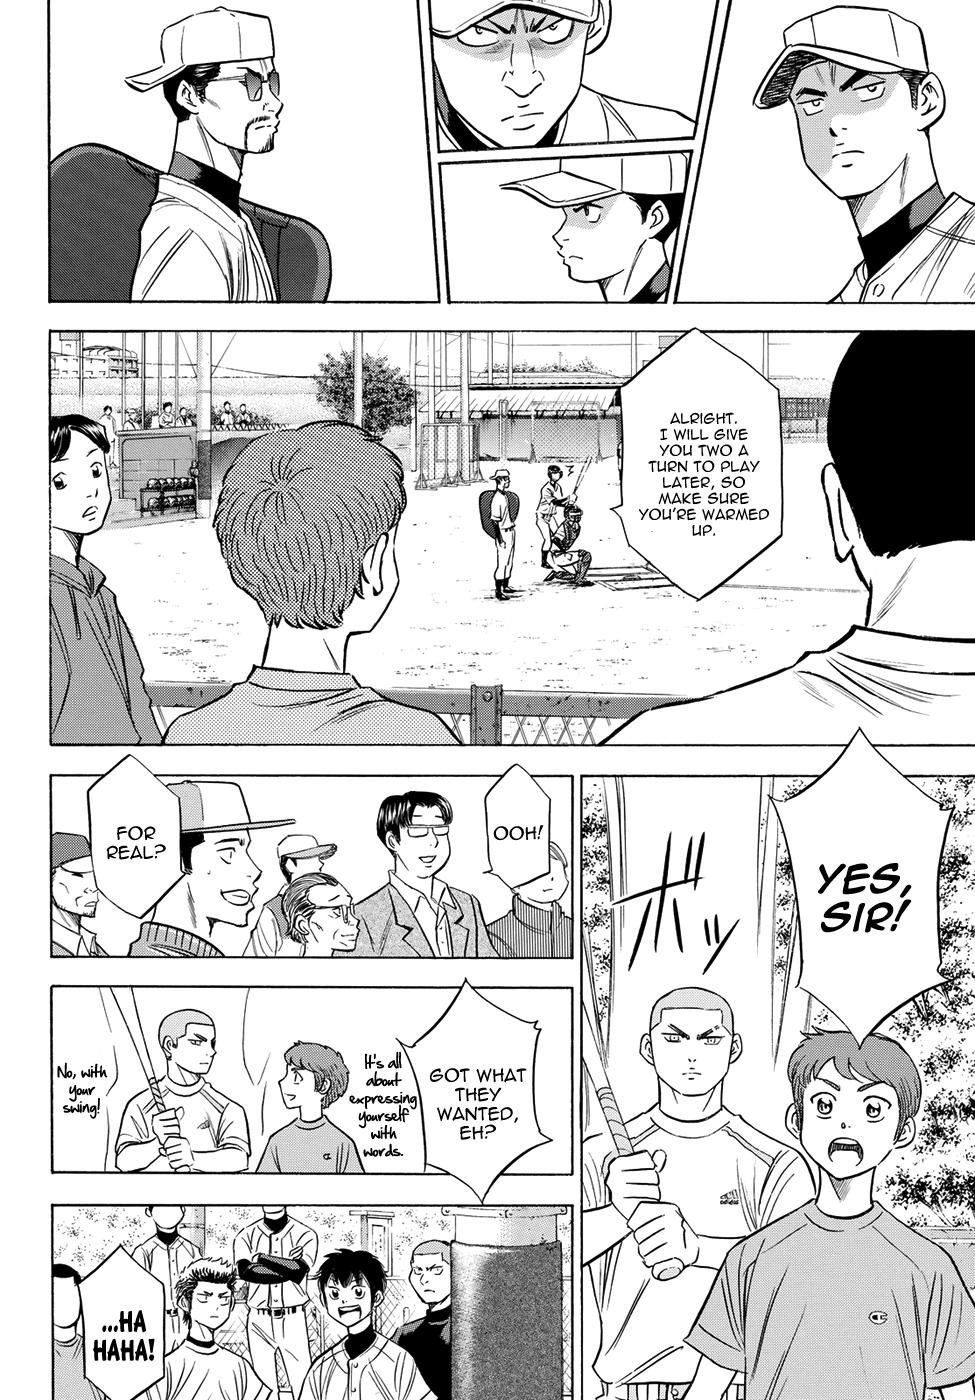 Daiya no A - Act II - Chapter 58